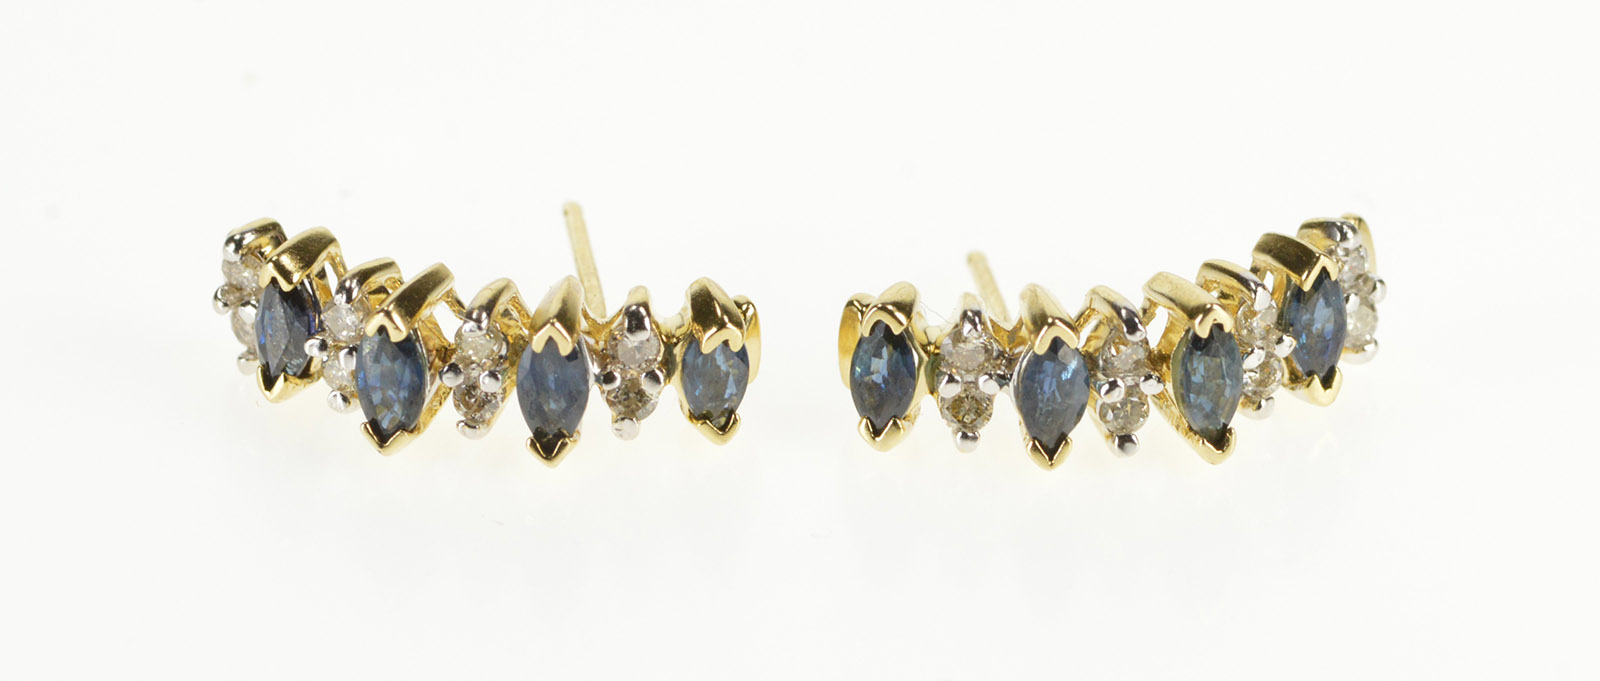 53ef3fb60 Image 1 of 4 Free Shipping. 14K Marquise Sapphire Diamond Accent Curved Bar  Yellow Gold Earrings